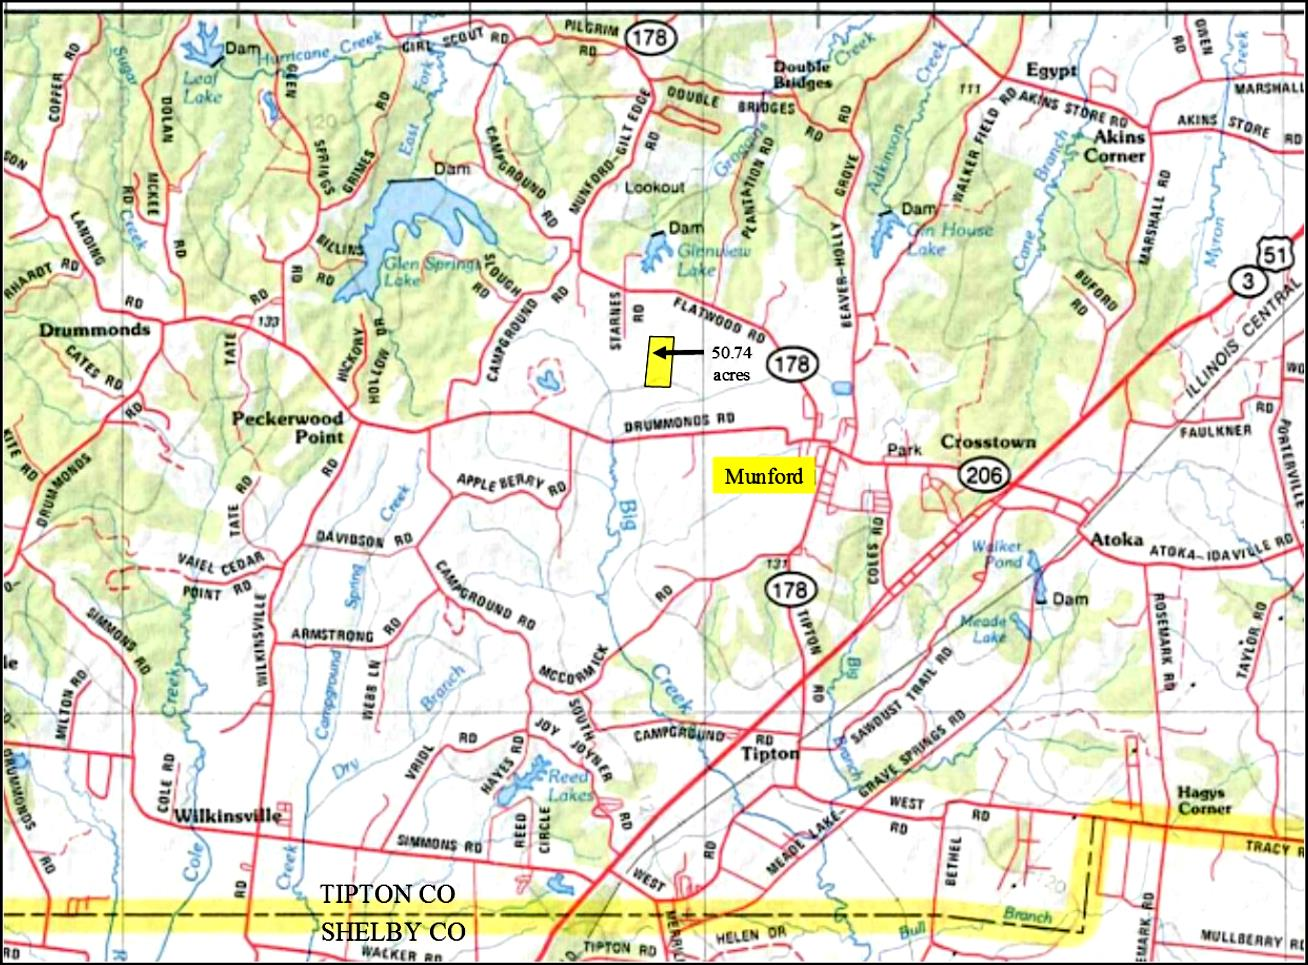 georgia tornado map with 50 74 Acres Tipton County Tennessee on Archive further 298 How Safe Is The Kansas City Area further 2129475055 likewise 5701187270 likewise 50 74 Acres Tipton County Tennessee.